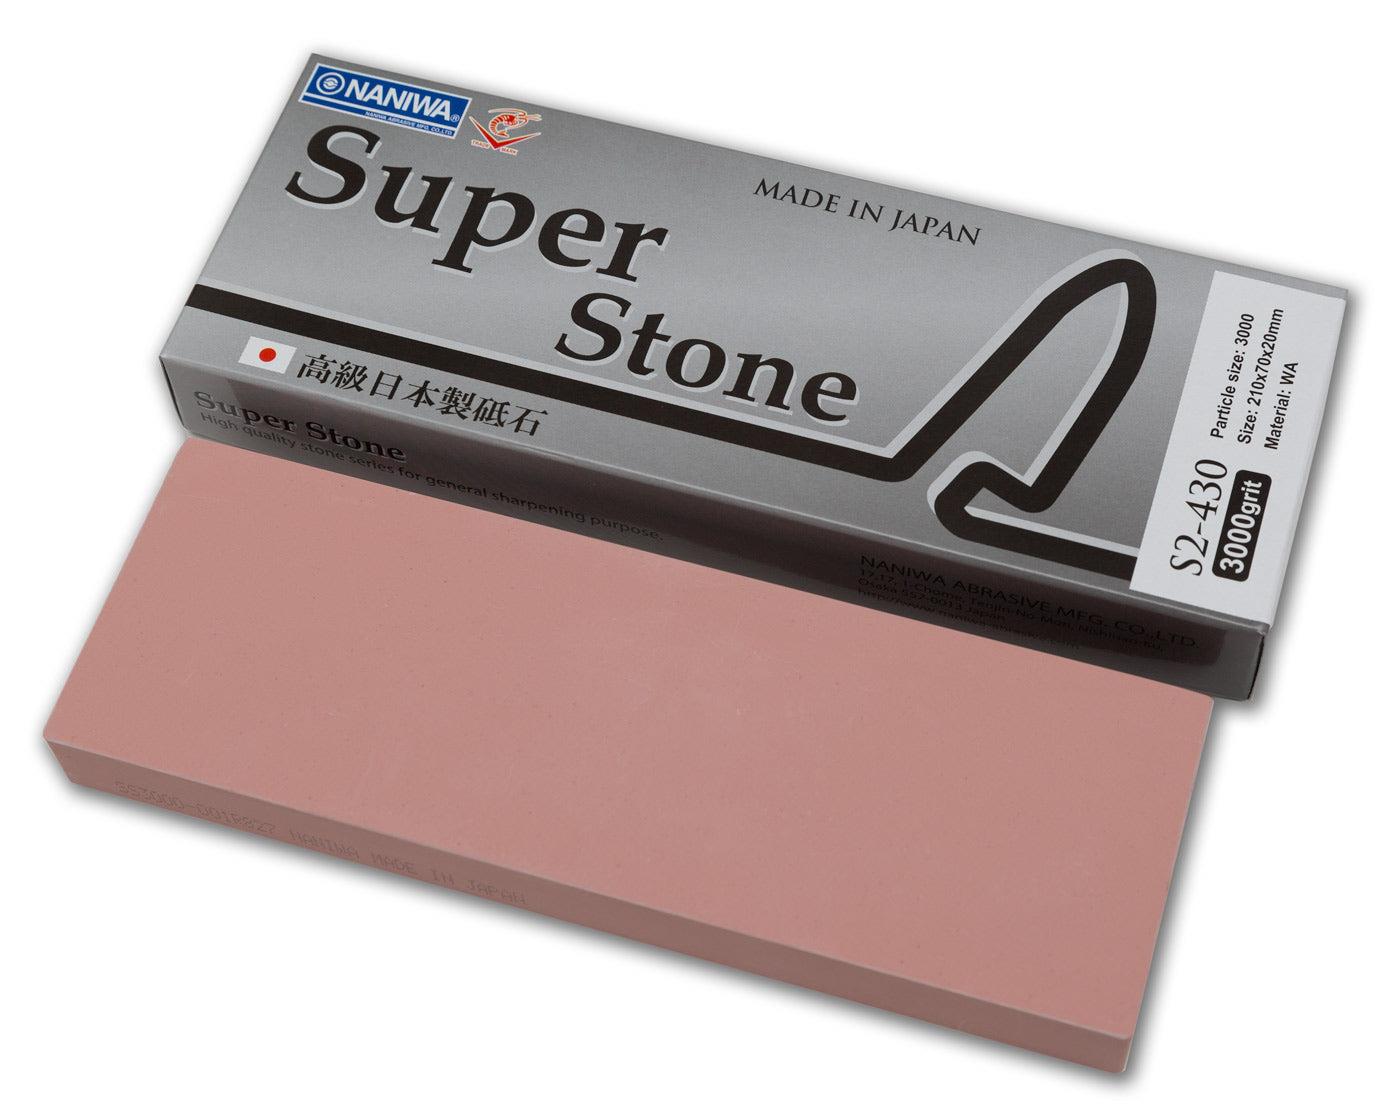 Naniwa Super-Stone Japanese Whetstone Sharpening Stone, 3000 grit